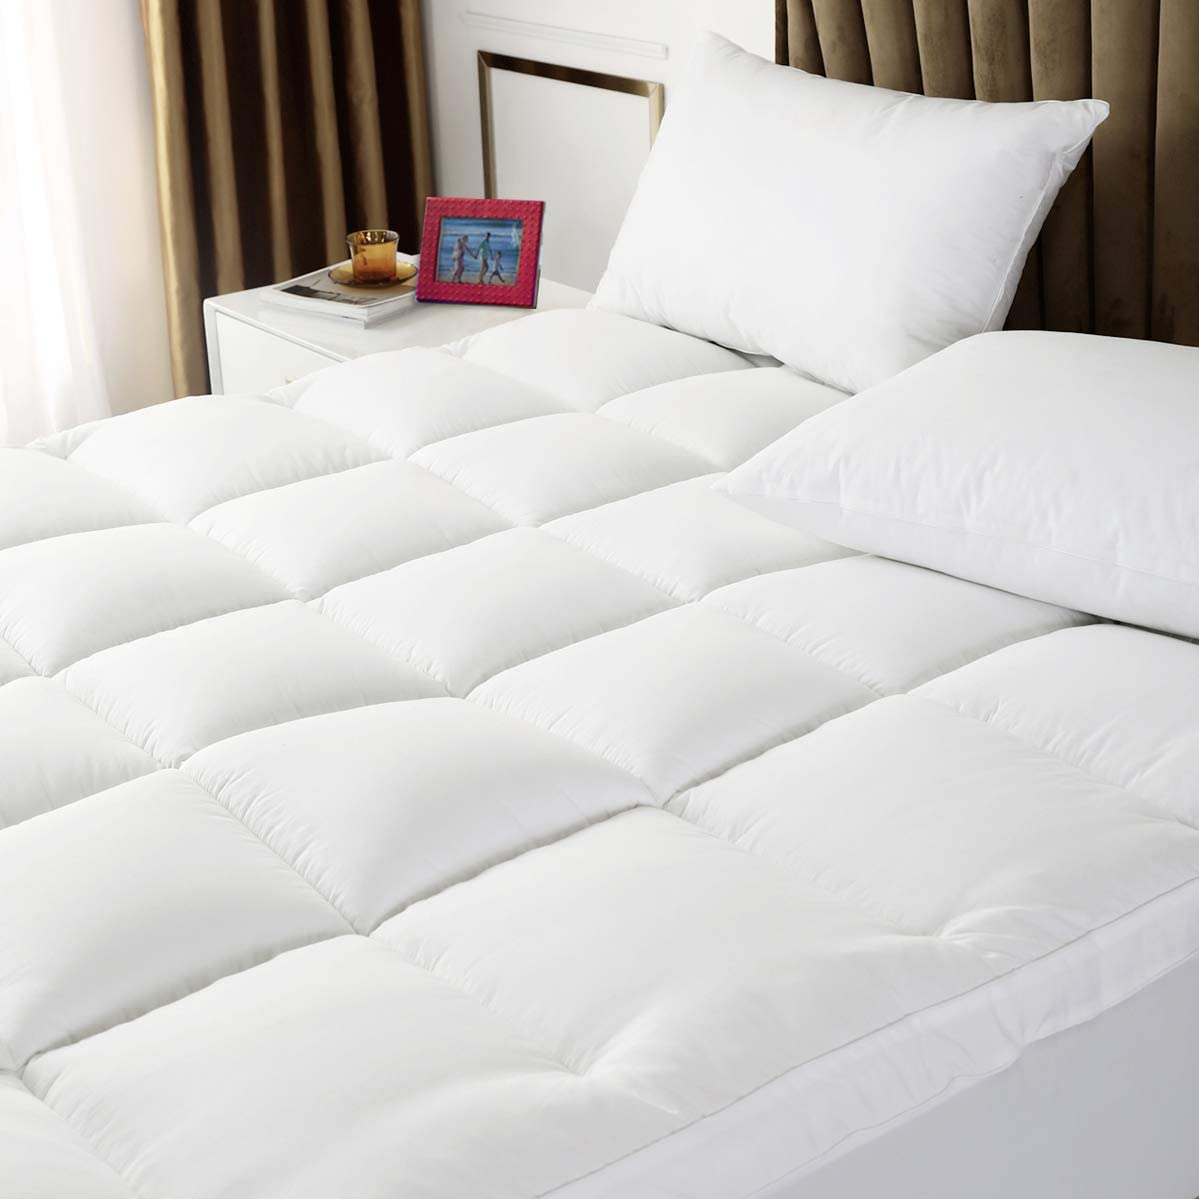 Queen Mattress Topper - Over item handling ☆ Extra Pad 1 Thick 400TC Cover Regular discount